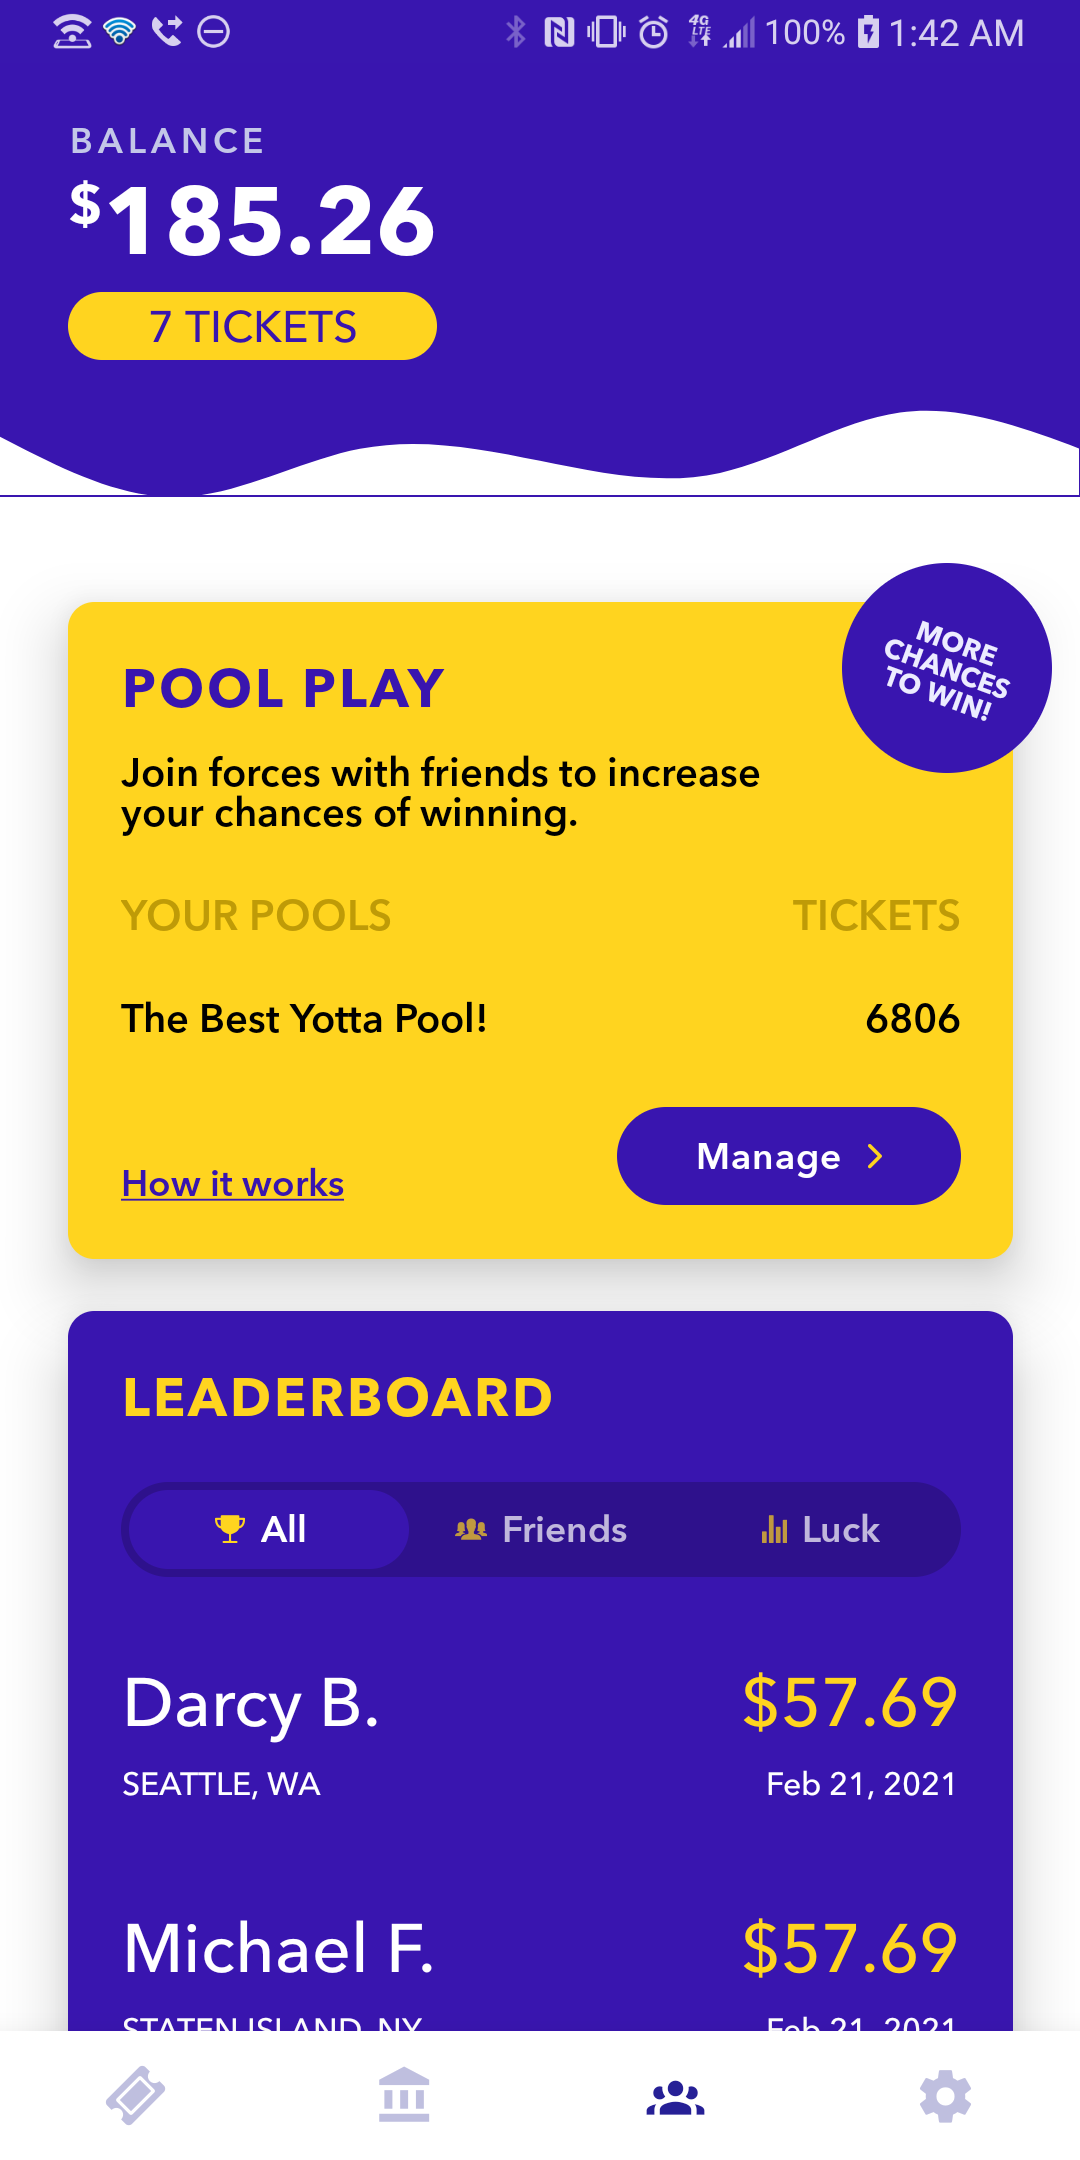 Image of a Yotta Pool - Increasing the probability of winning weekly! - Dividendhack.com